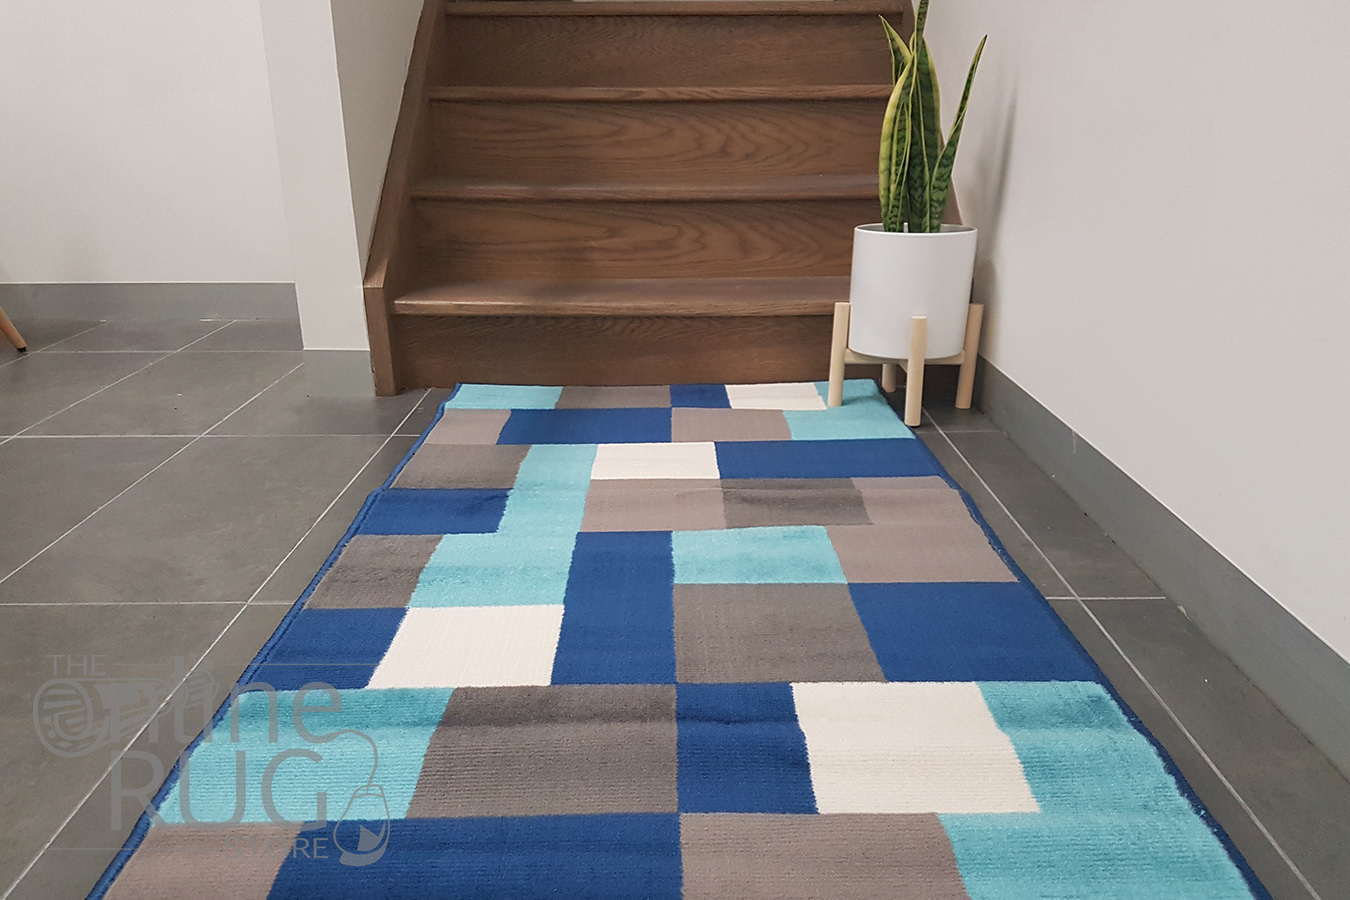 Industry Multicolour Tiles Hallway Runner